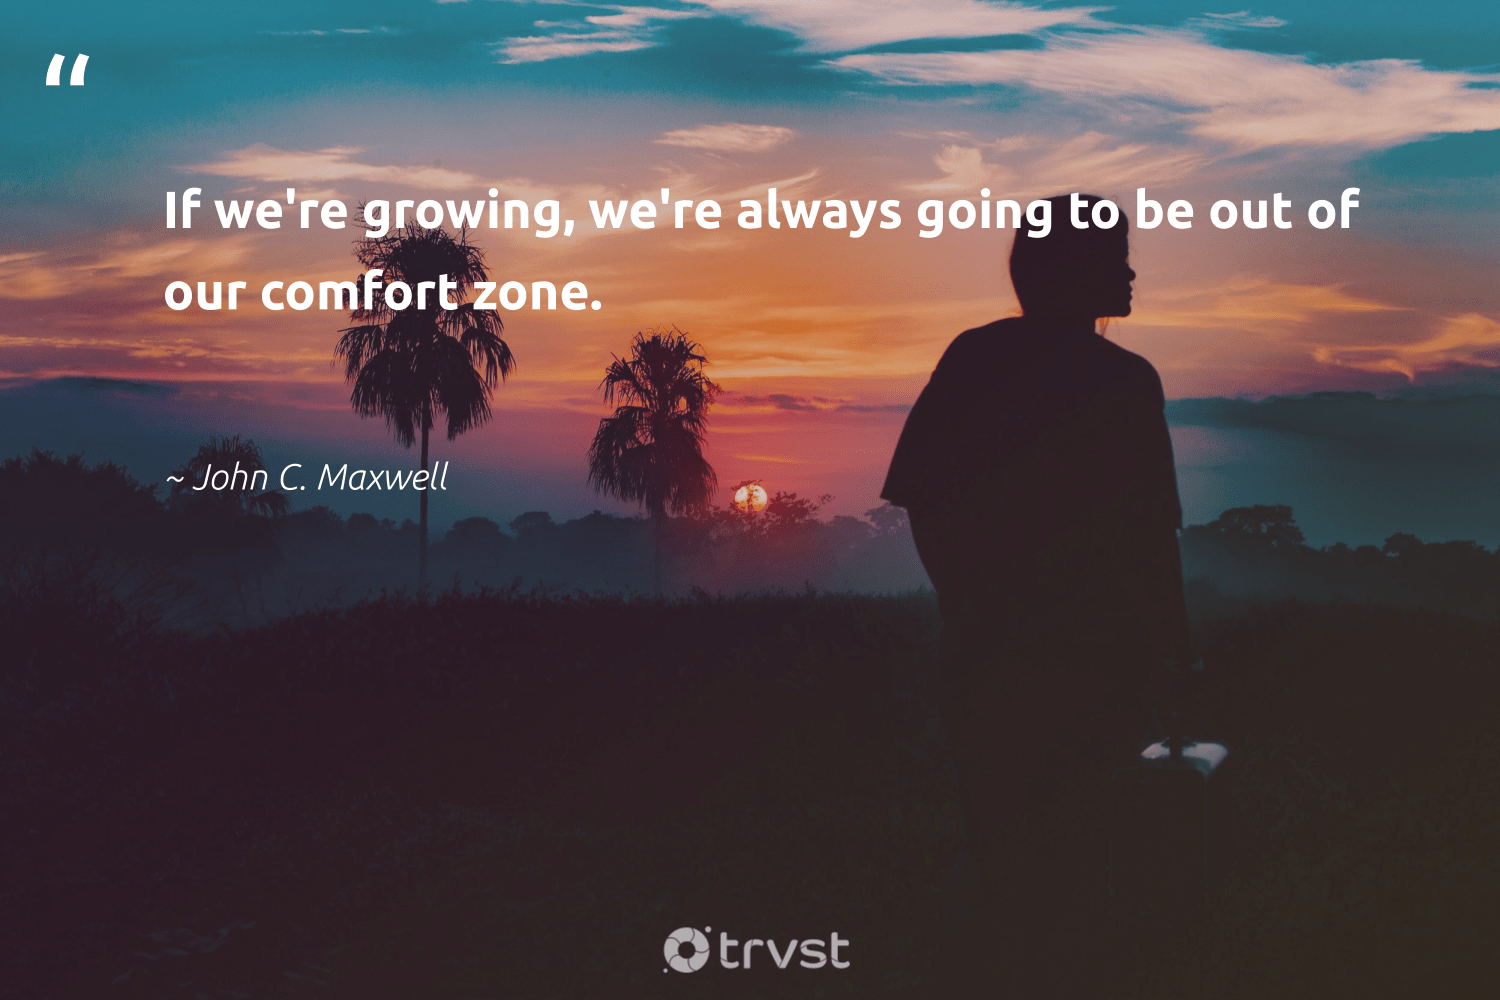 """If we're growing, we're always going to be out of our comfort zone. ""  - John C. Maxwell #trvst #quotes #softskills #changetheworld #futureofwork #thinkgreen #nevergiveup #bethechange #begreat #gogreen #dogood #socialimpact"